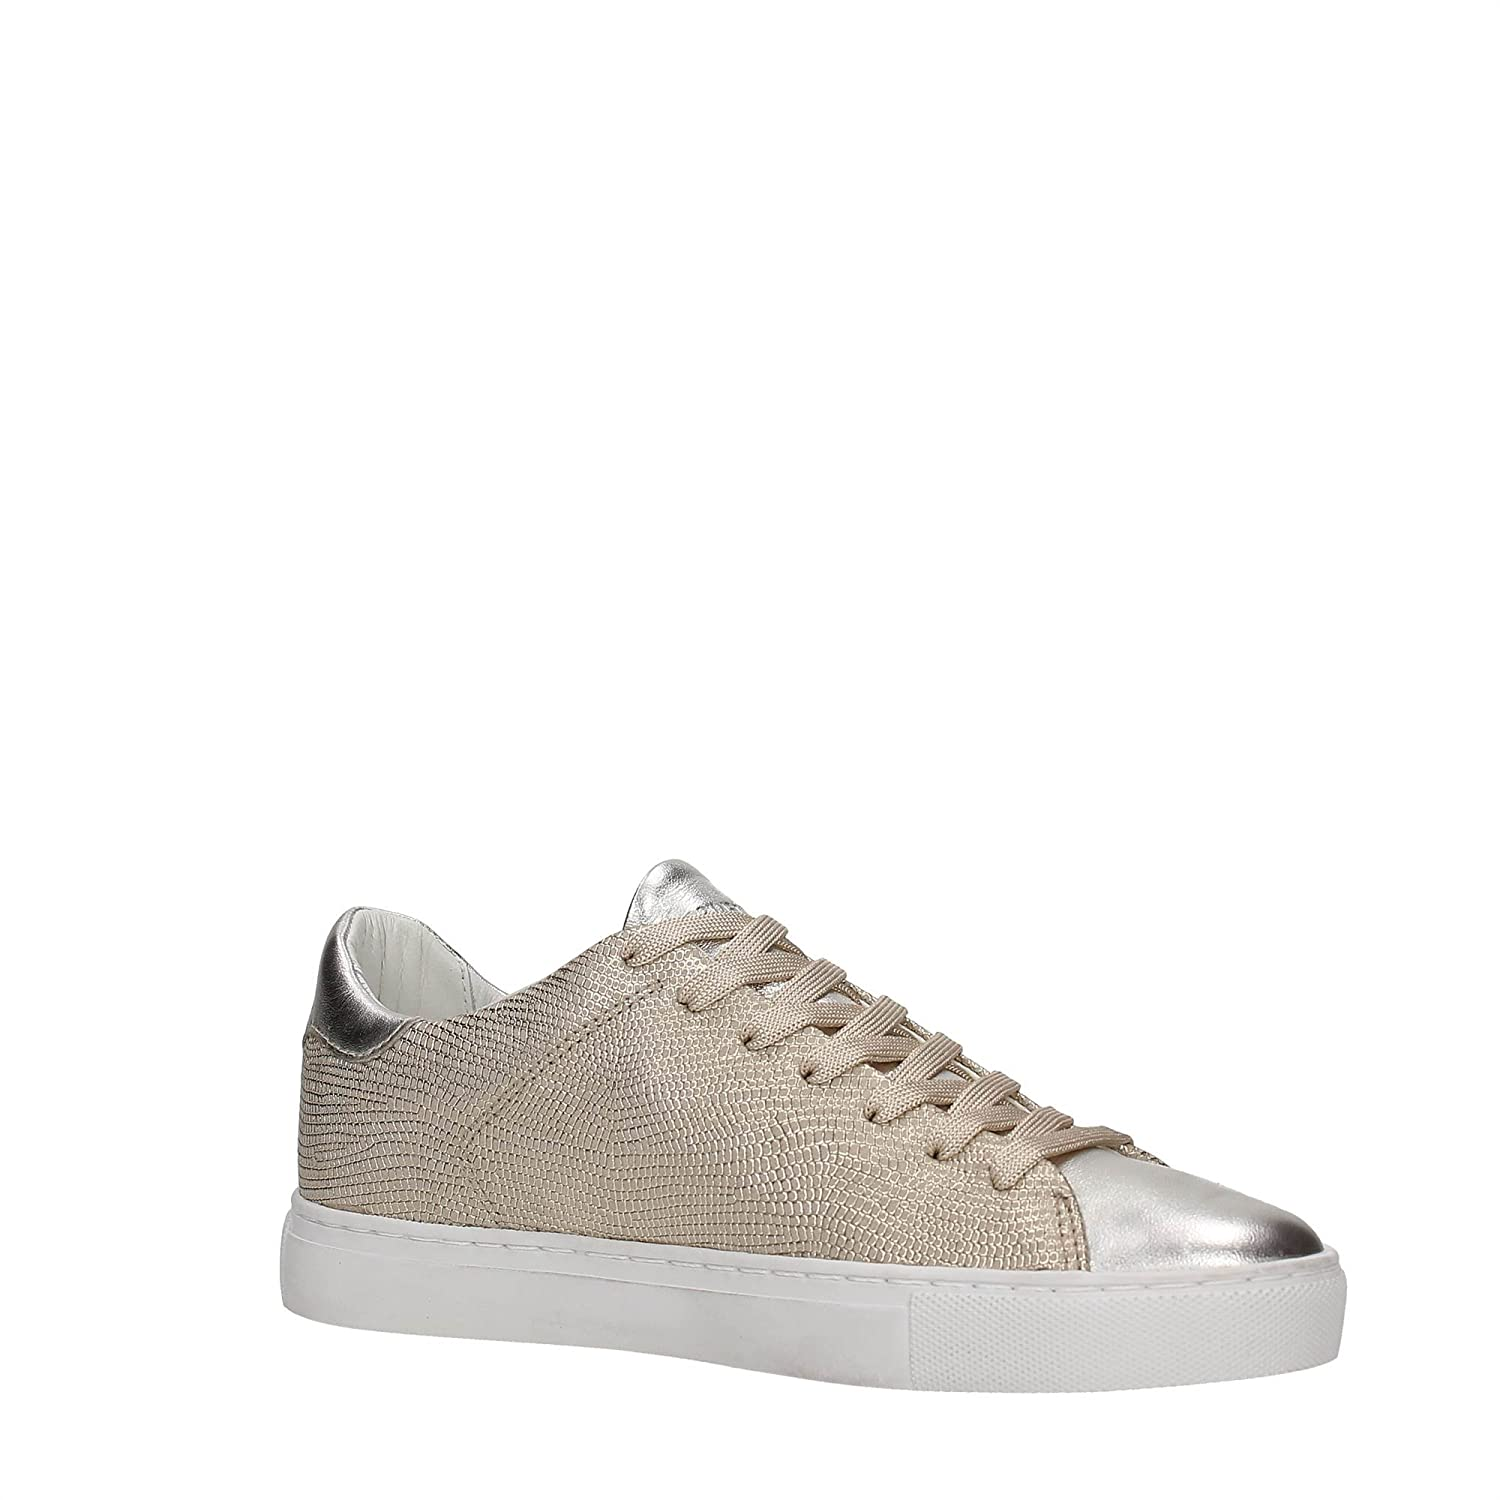 Crime 25205s17b Sneakers Donna Pelle Platino Platino 40